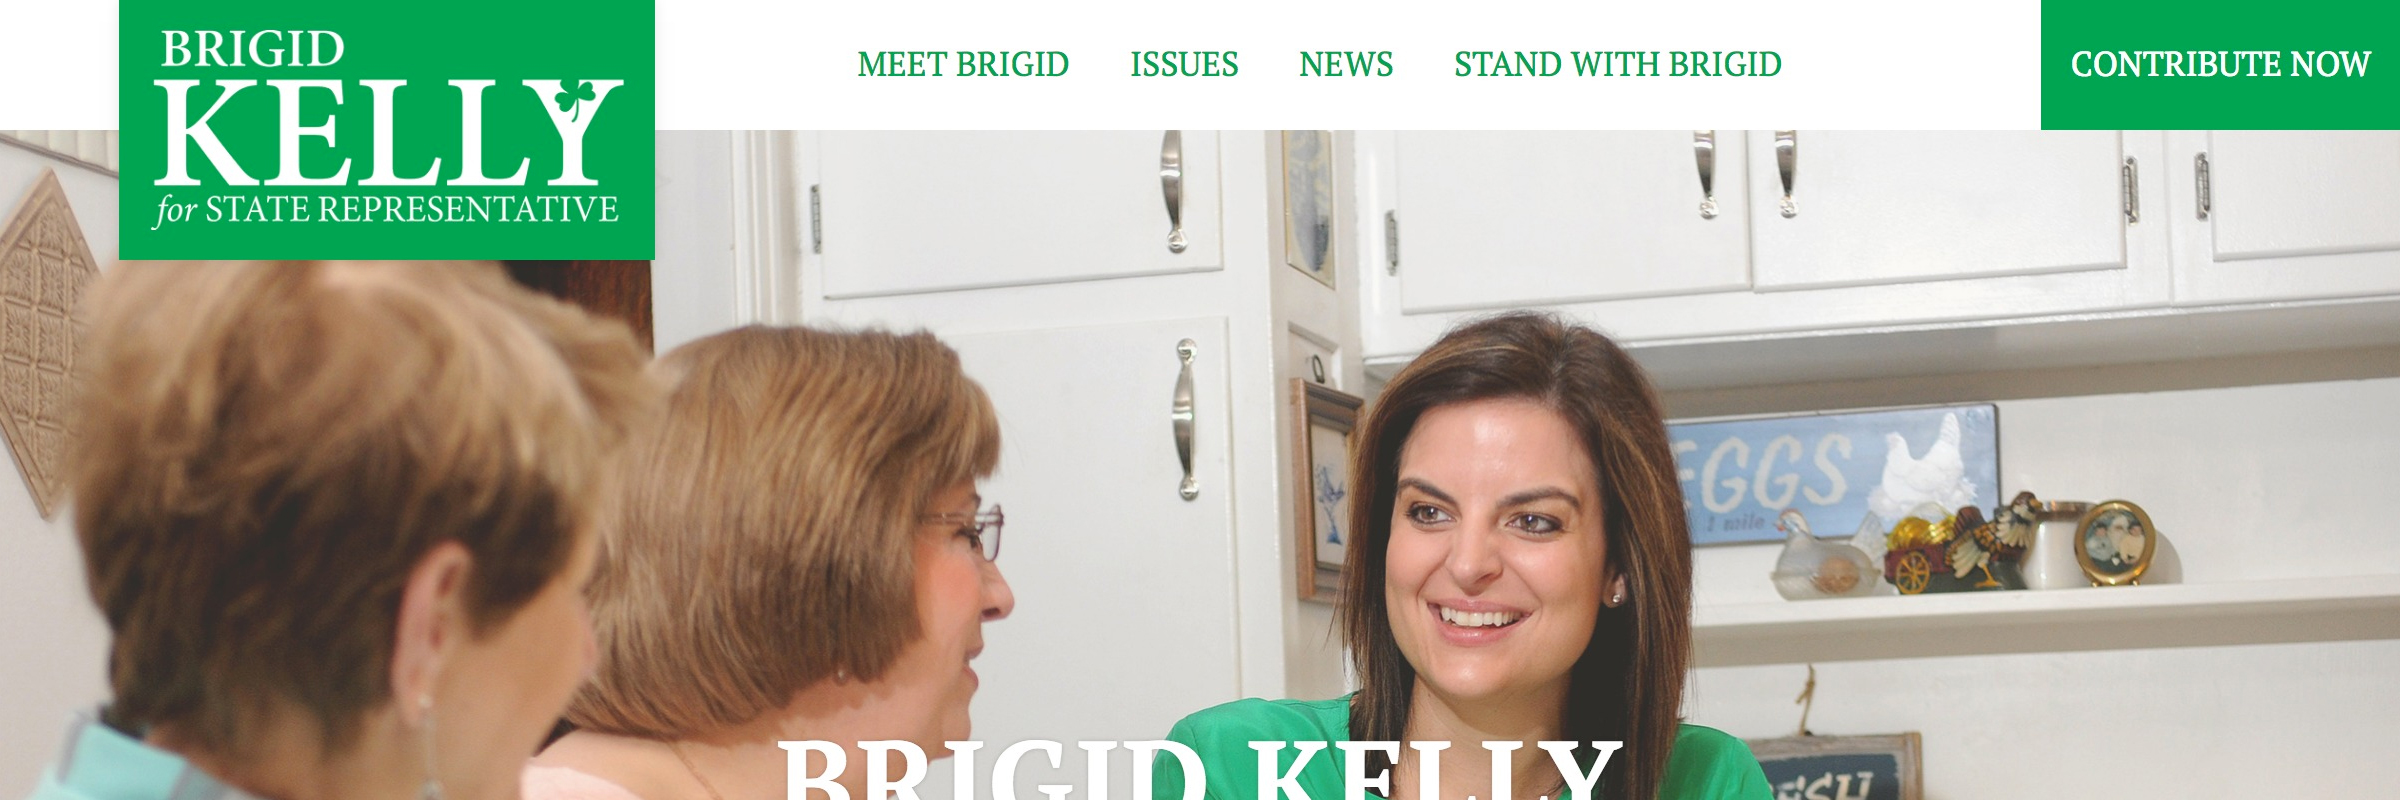 Brigid Kelly For State Representative